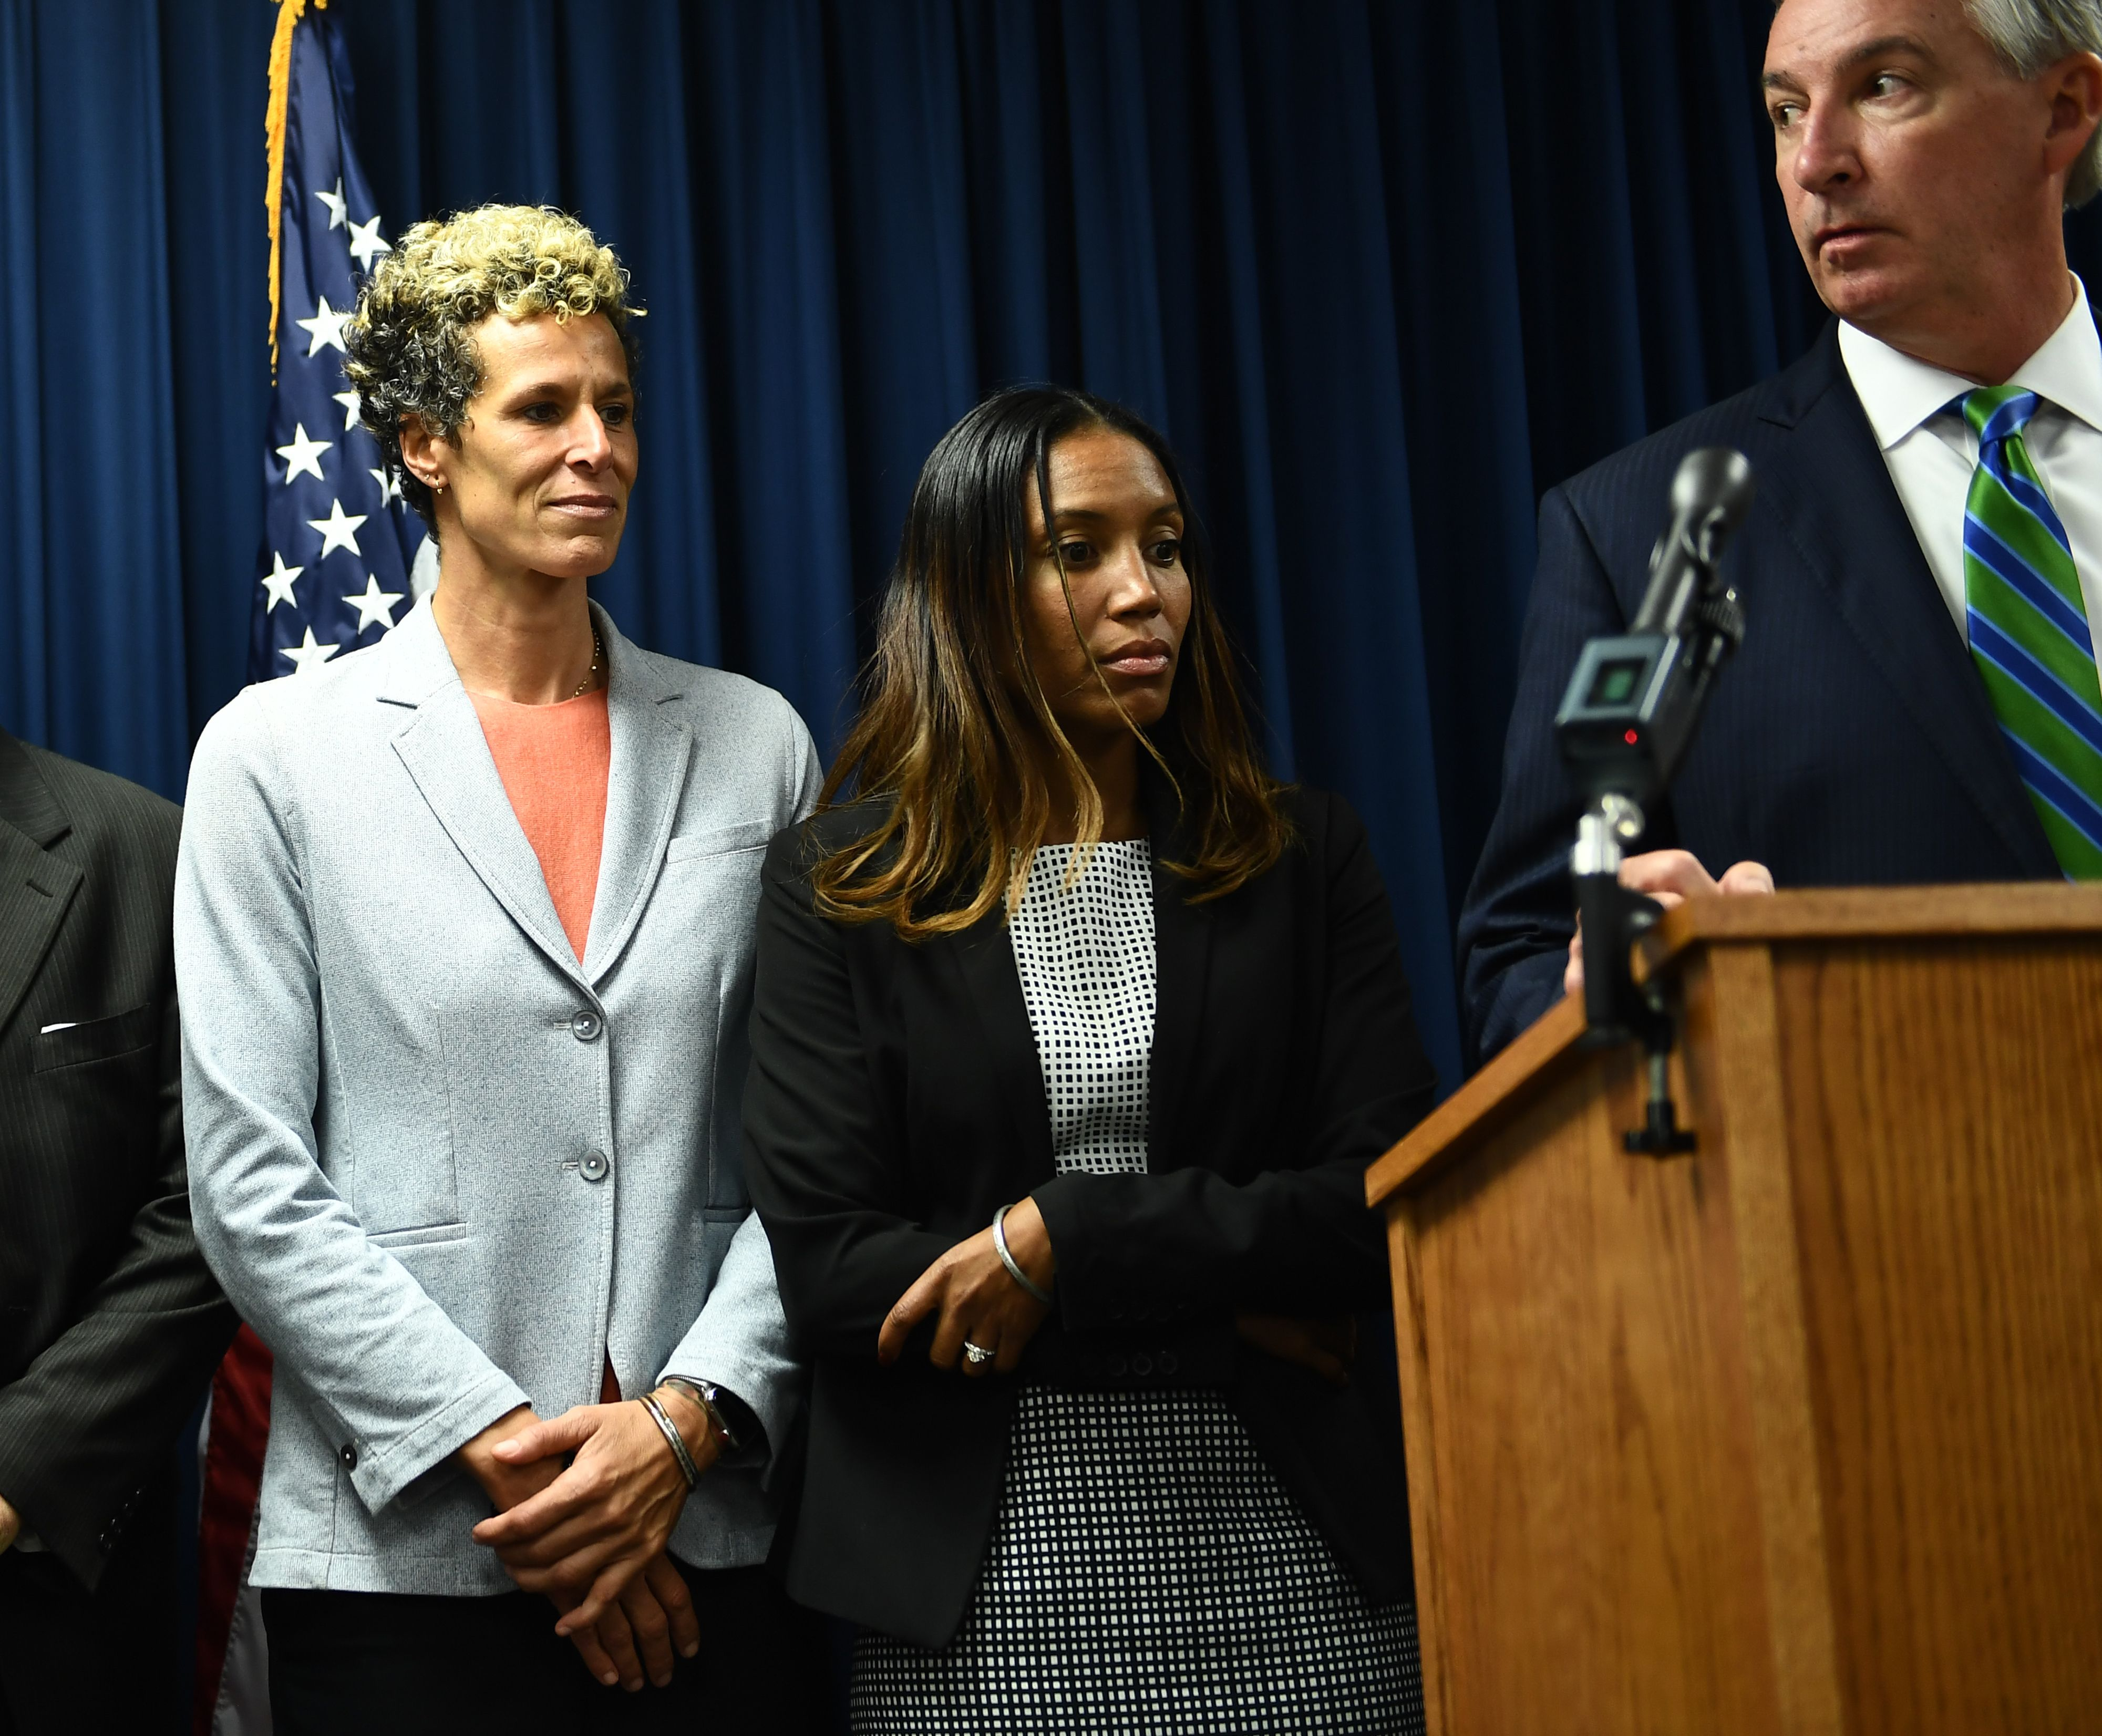 """Andrea Constand (L) attends a press conference with Montgomery County District Attorney Kevin Steele (R) on September 25, 2018 in Norristown, Pennsylvania, after comedian Bill Cosby was sentenced to at least three years in prison and branded a """"sexually violent predator"""" for assaulting a woman at his Philadelphia mansion 14 years ago. - The 81-year-old, once beloved by millions as """"America's Dad,"""" is the first celebrity convicted and sentenced for a sex crime since the downfall of Harvey Weinstein ushered in the #MeToo movement and America's reckoning with sexual harassment. (Photo credit should read BRENDAN SMIALOWSKI/AFP via Getty Images)"""